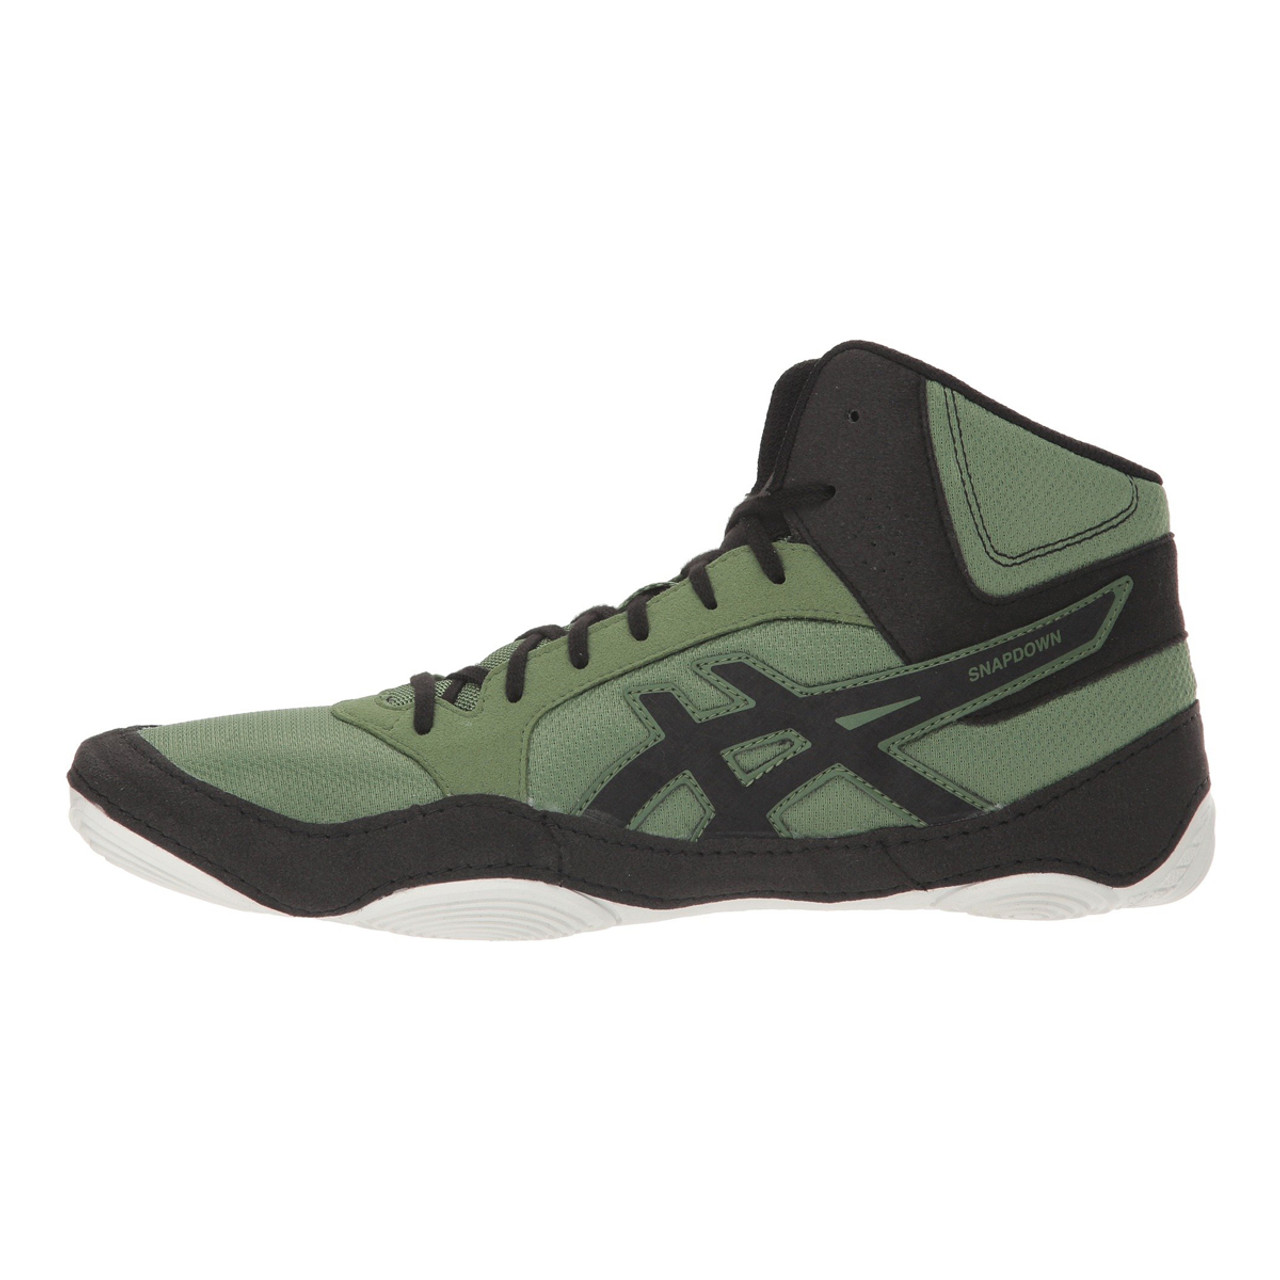 double coupon kid top-rated newest Asics Snapdown 2 Adult Wrestling Shoes - Green, Black